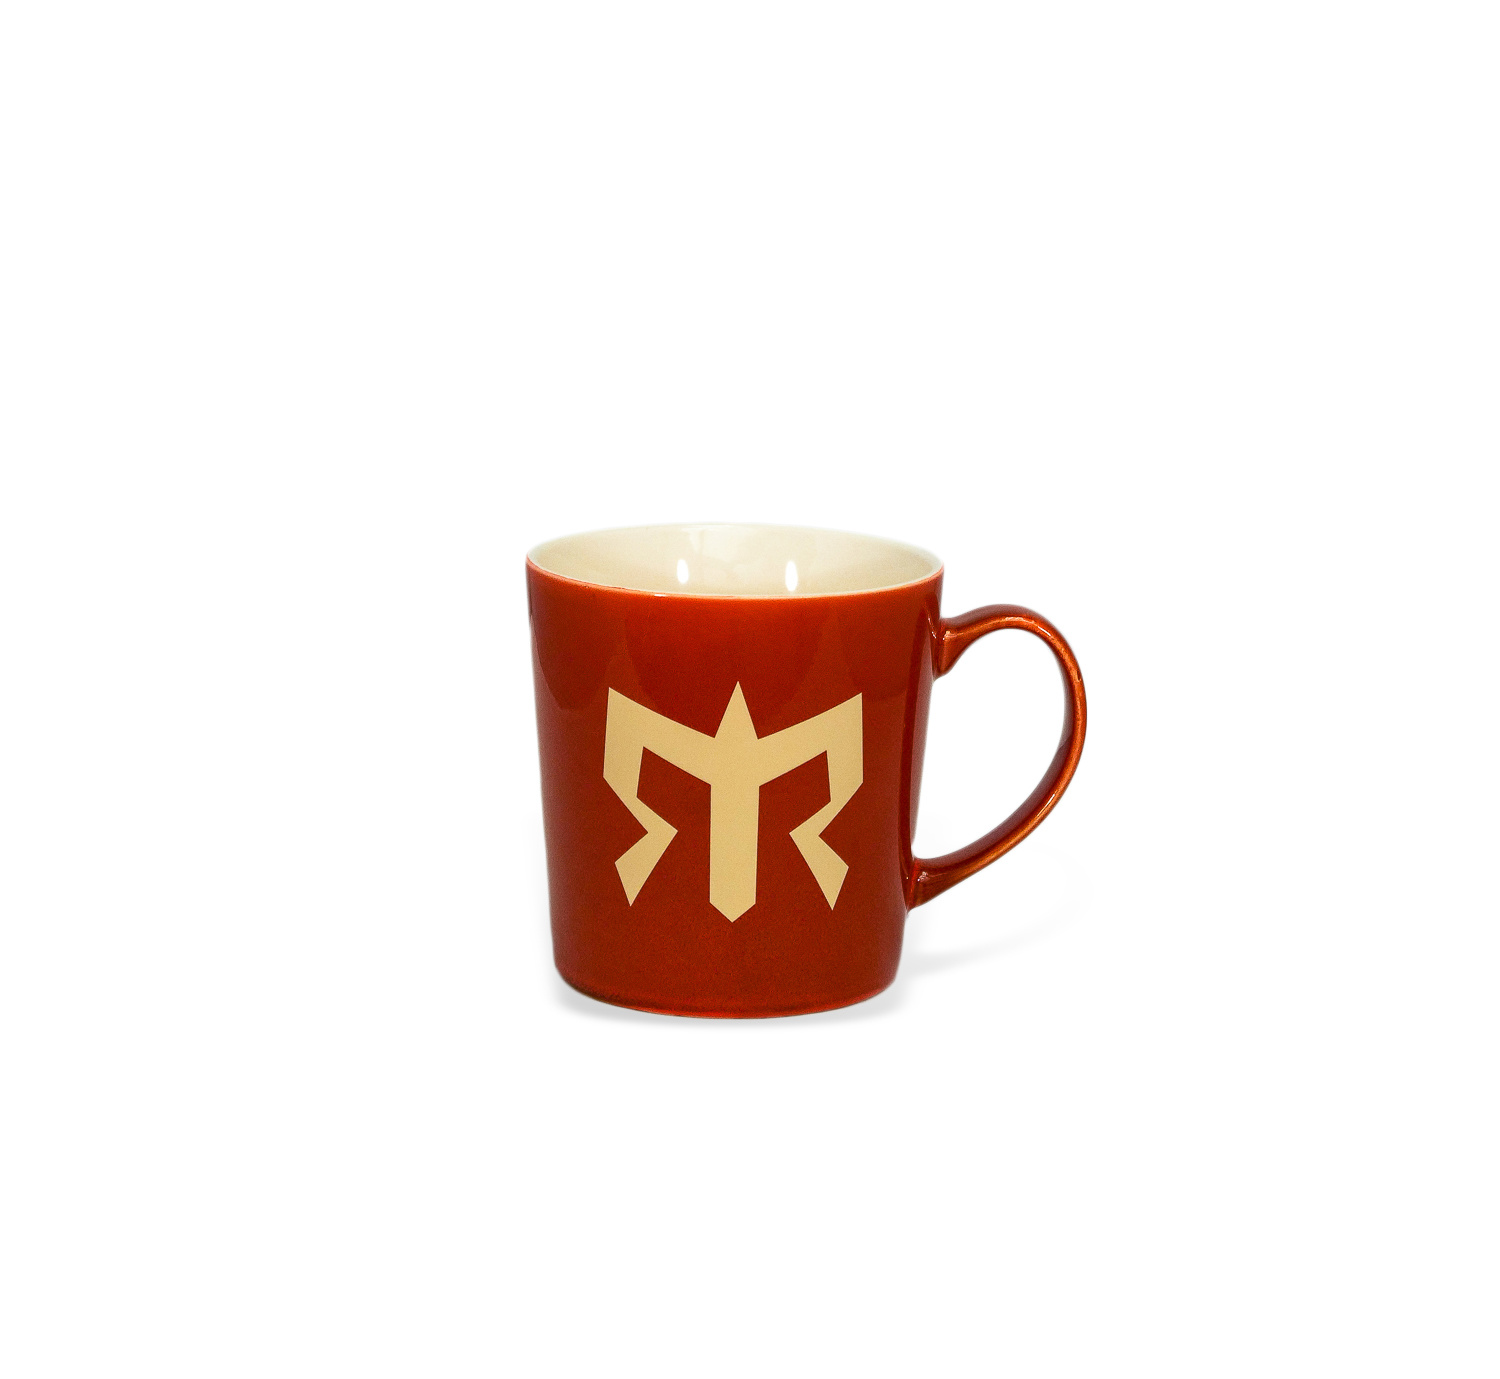 Ragnar Coffee Mug - Orange